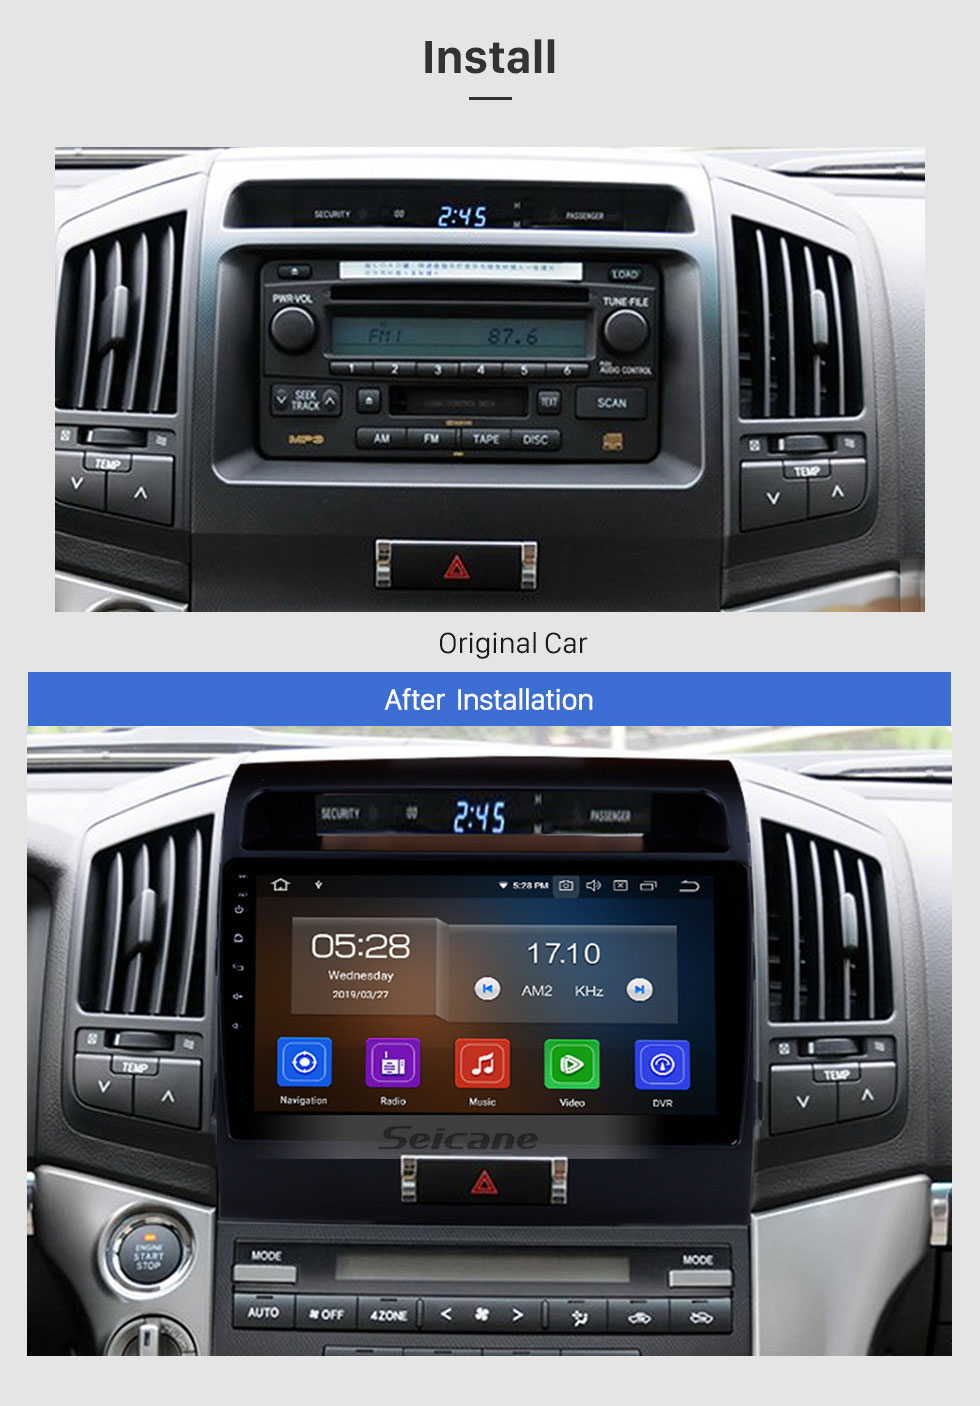 Seicane 10,1 Zoll 2007-2017 TOYOTA LAND CRUISER Android 9.0 HD-Touchscreen-Radio-GPS-Navigationssystem Bluetooth-Stützauto-Stereo-Musikspiegel-Link OBD2 3G / 4G WiFi-Video-Backup-Kamera